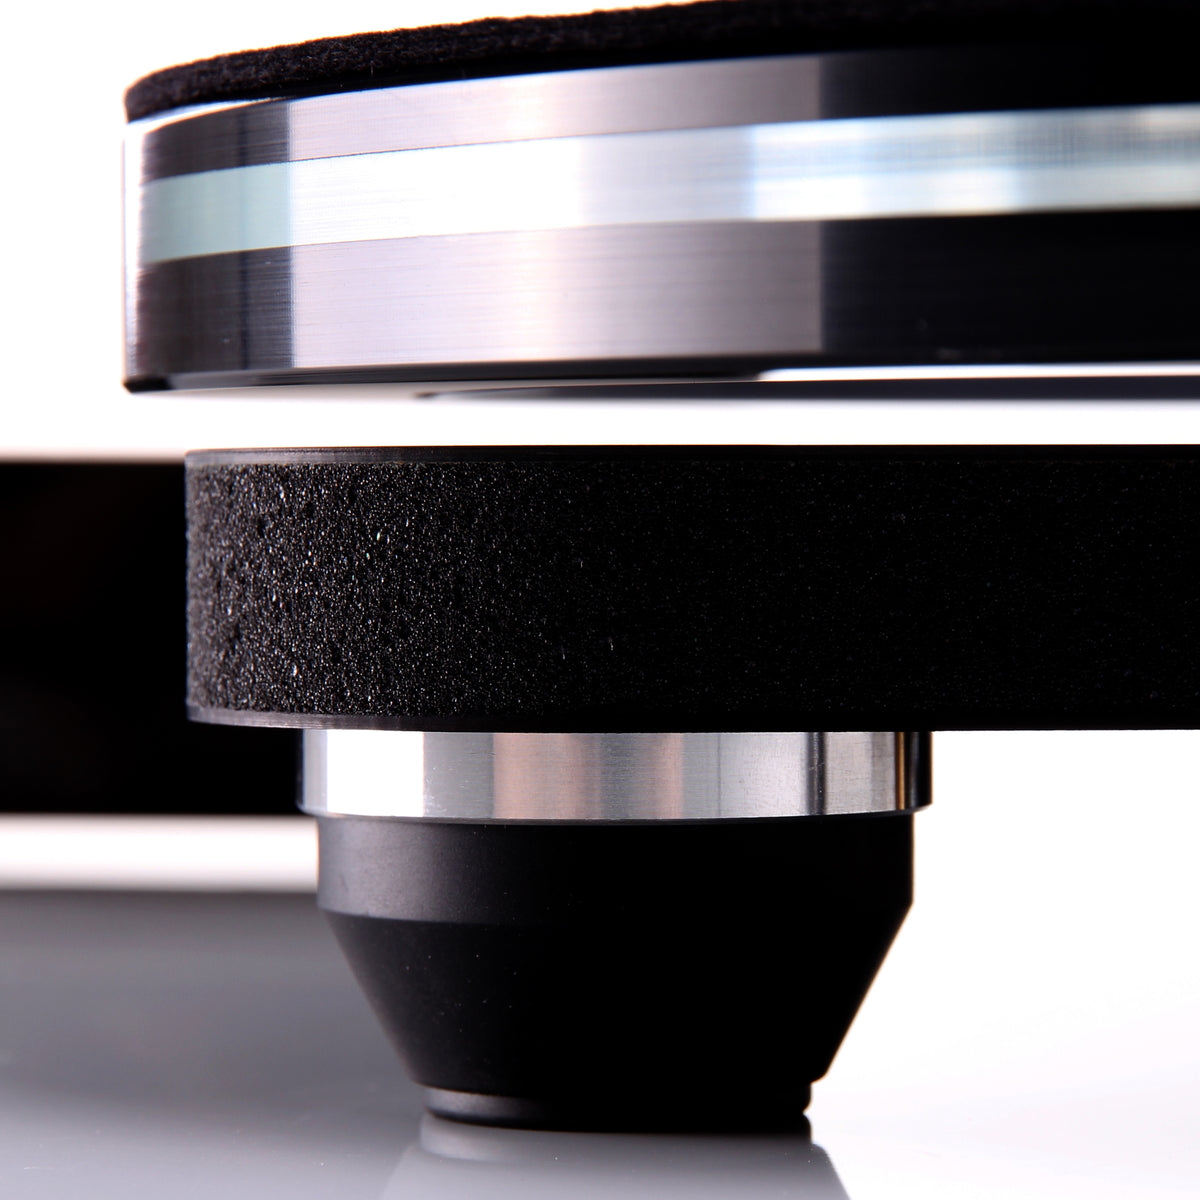 Rega: Planar 8 Turntable